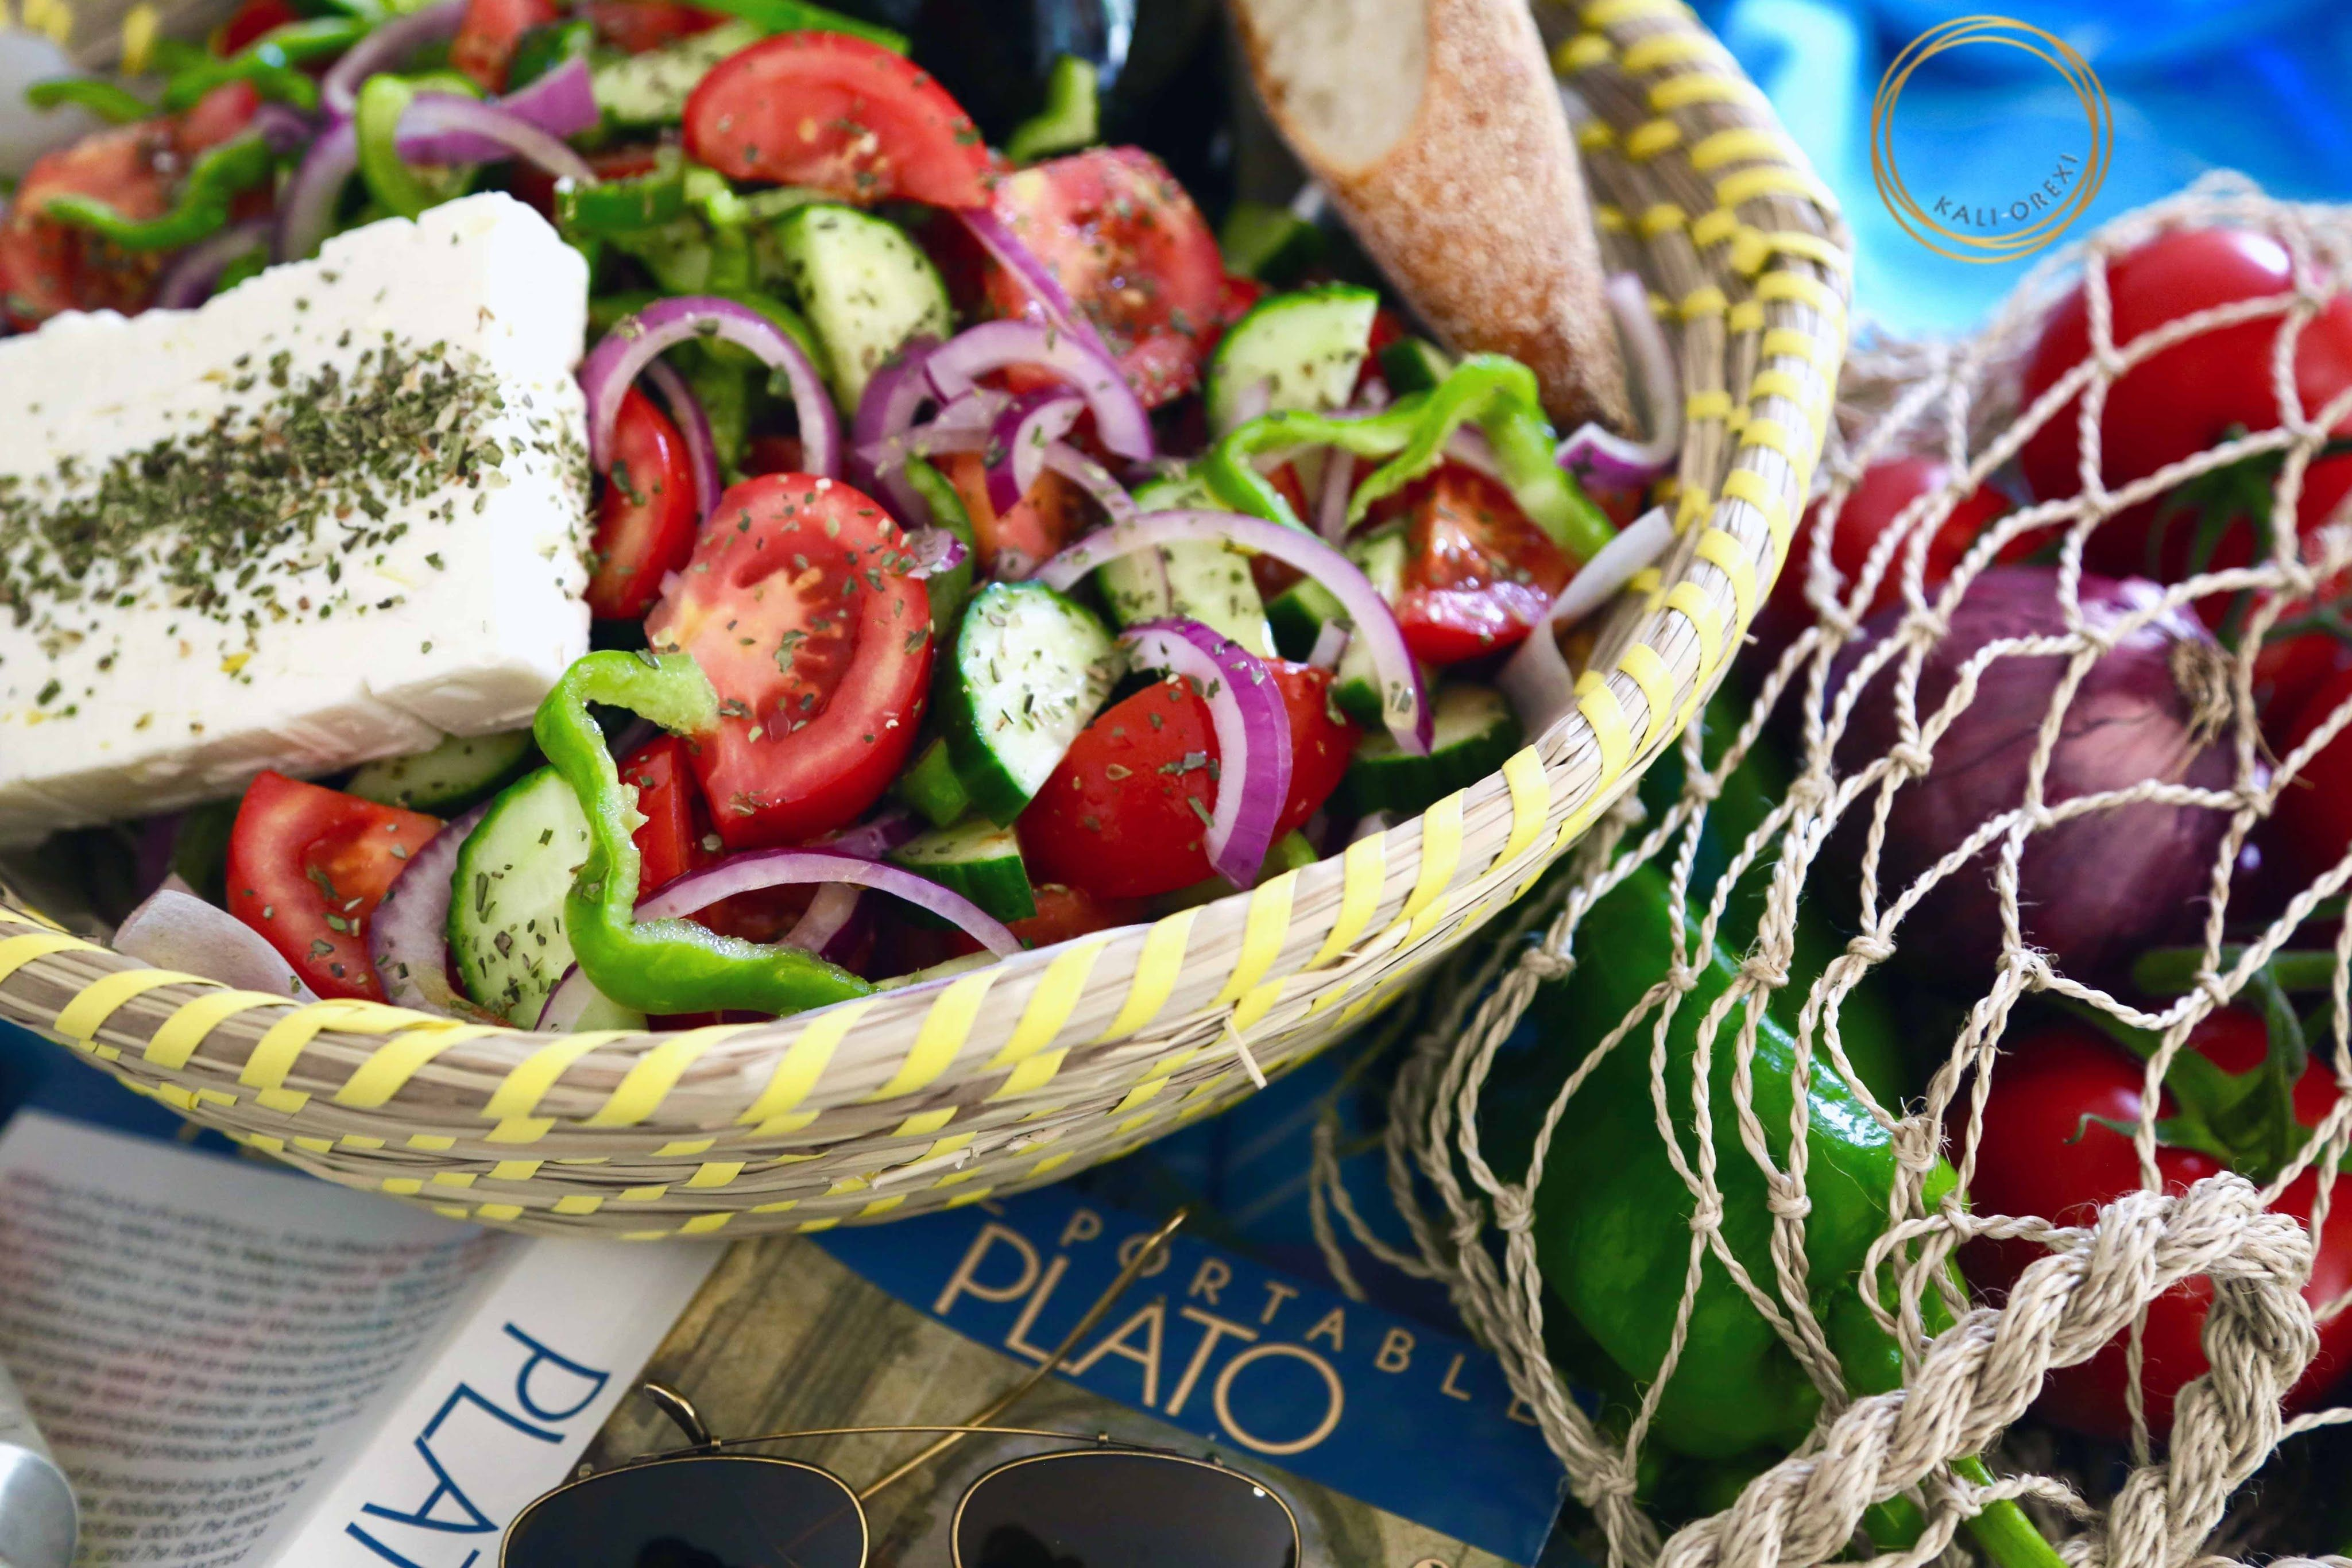 Kos greek salad a short and sweet or savoury recipe video kos greek salad a short and sweet or savoury recipe forumfinder Image collections